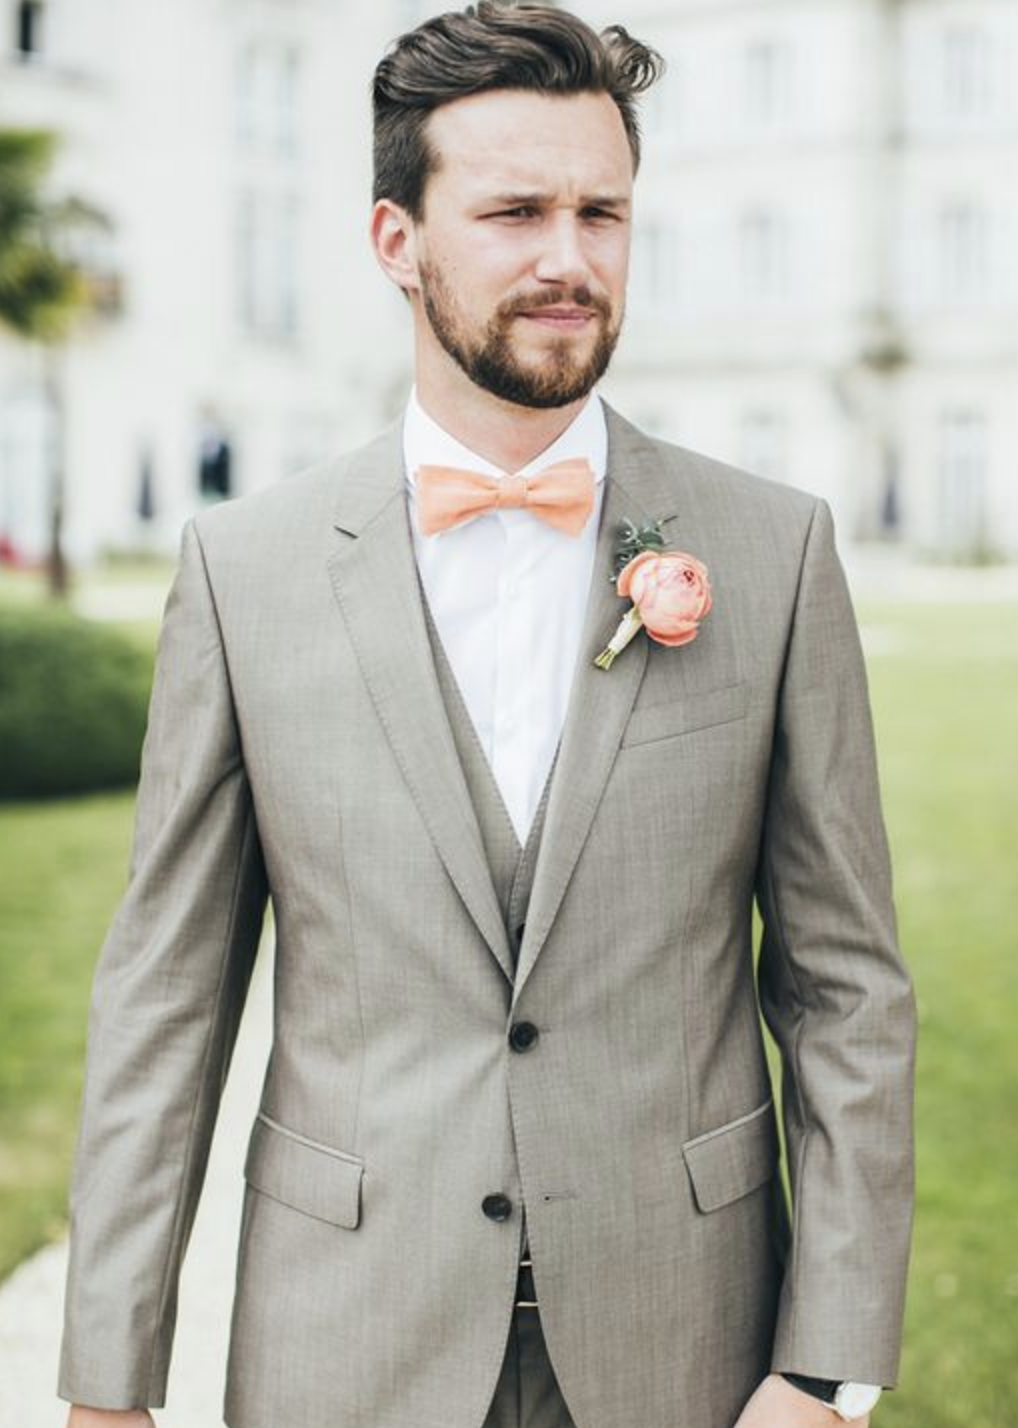 12 summer wedding suit ideas for grooms in 2019  weDSuits